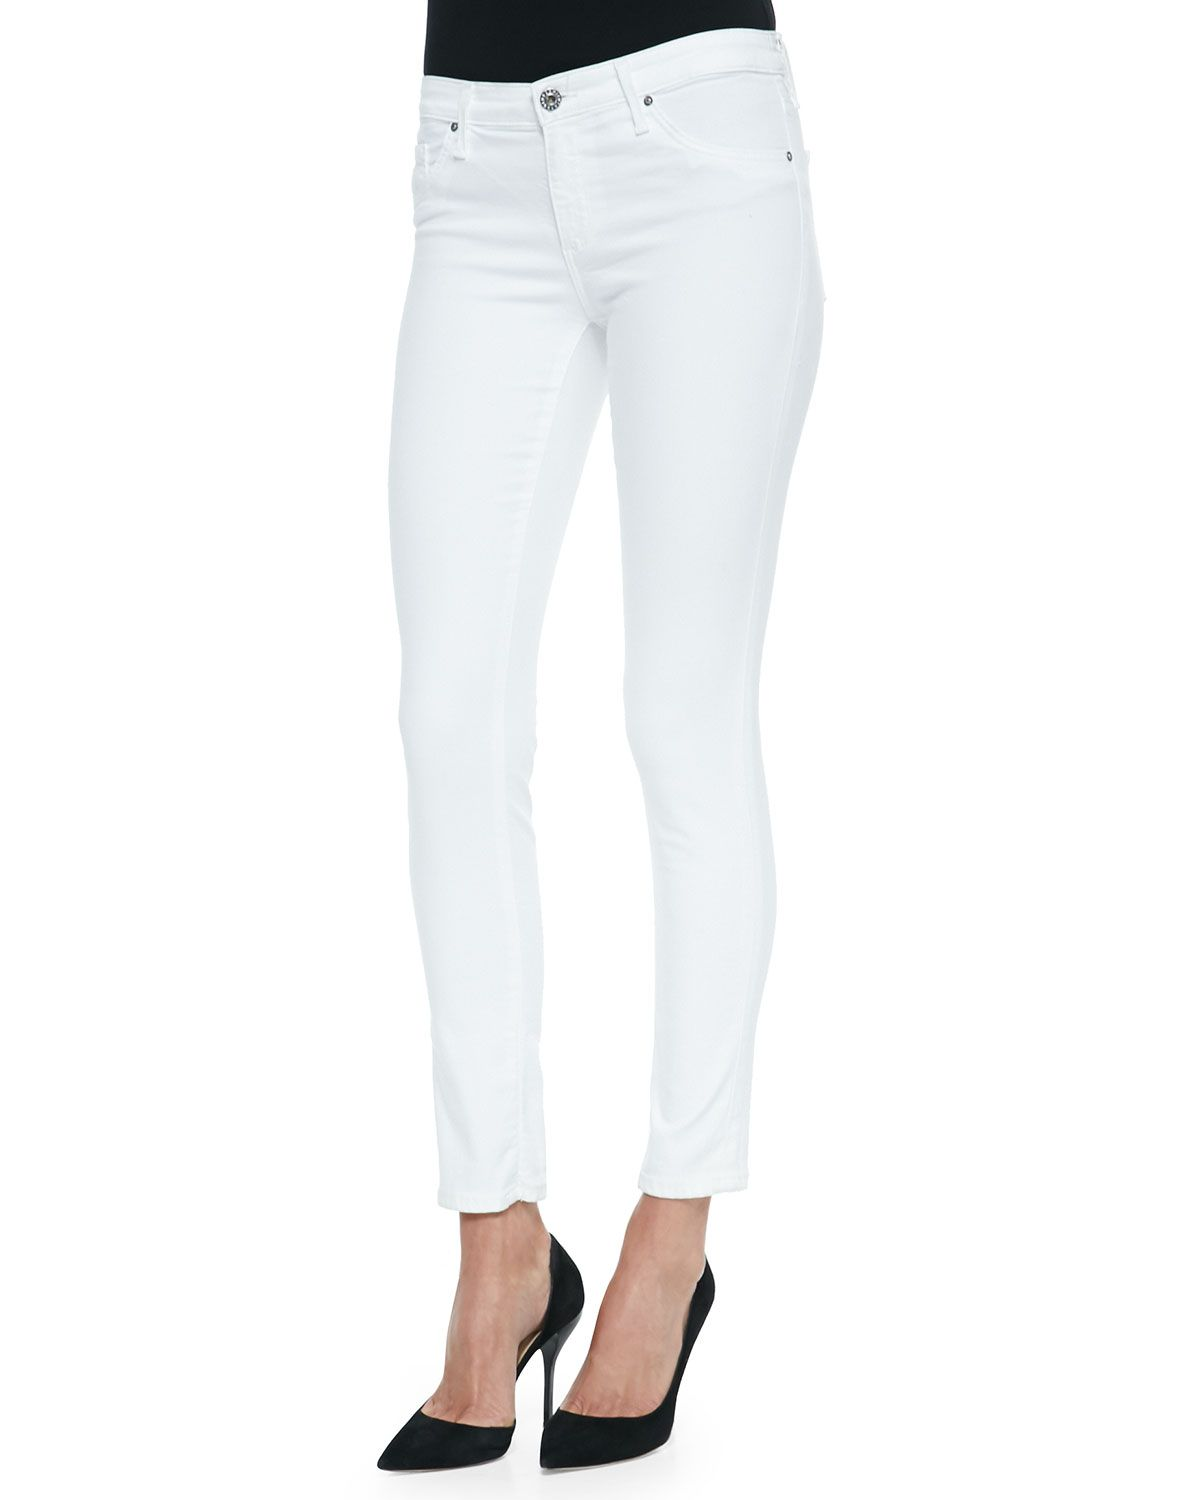 f4acec25af Legging Ankle Skinny, White, Women's, Size: 32 - AG. Find this Pin and more  on *Clothing > Pants* by Neiman Marcus.